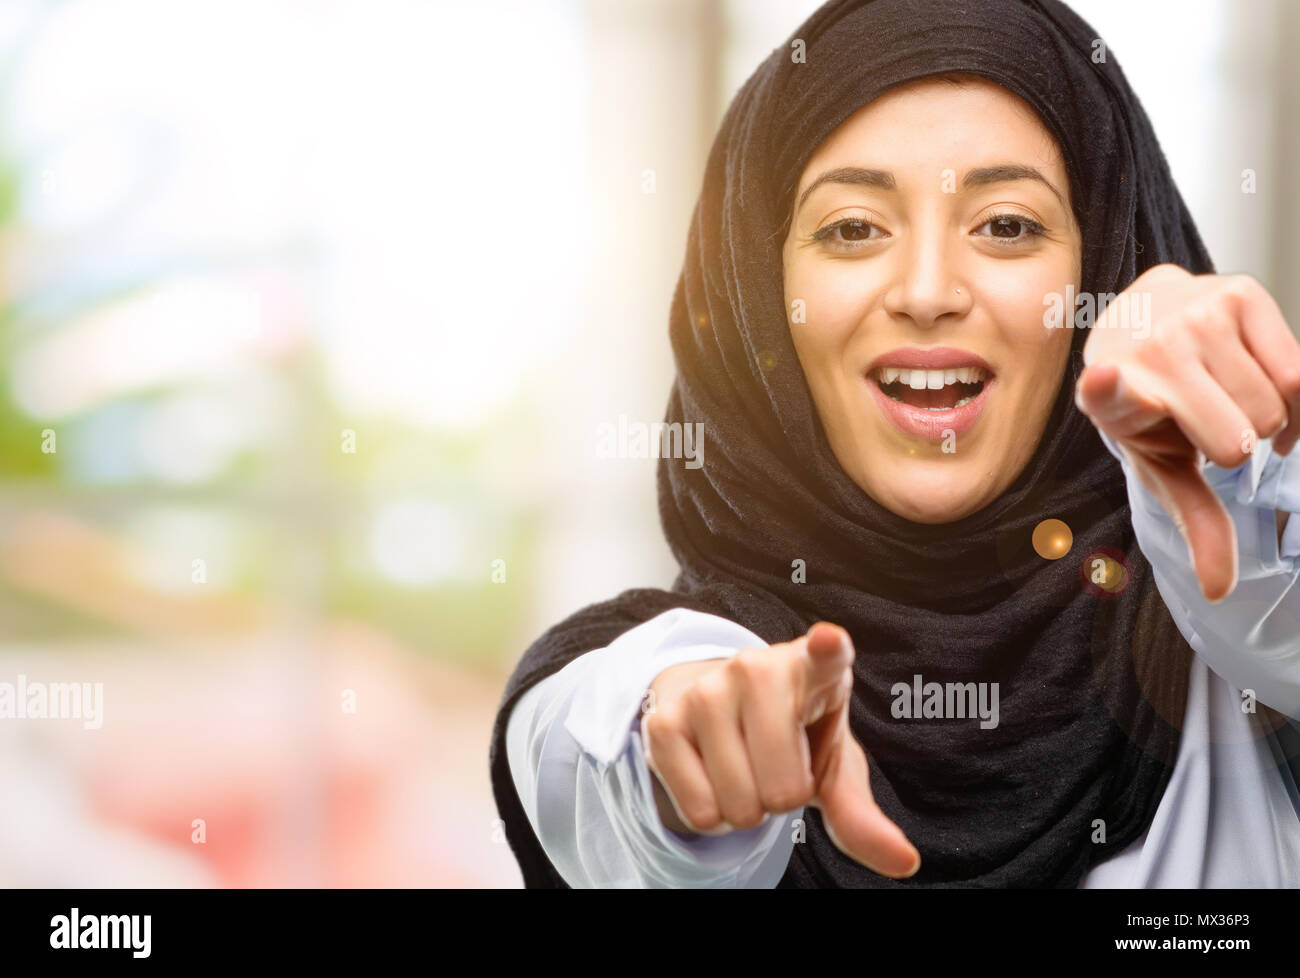 b87303f37 Standing Front Arabic Ethnic Stock Photos   Standing Front Arabic ...